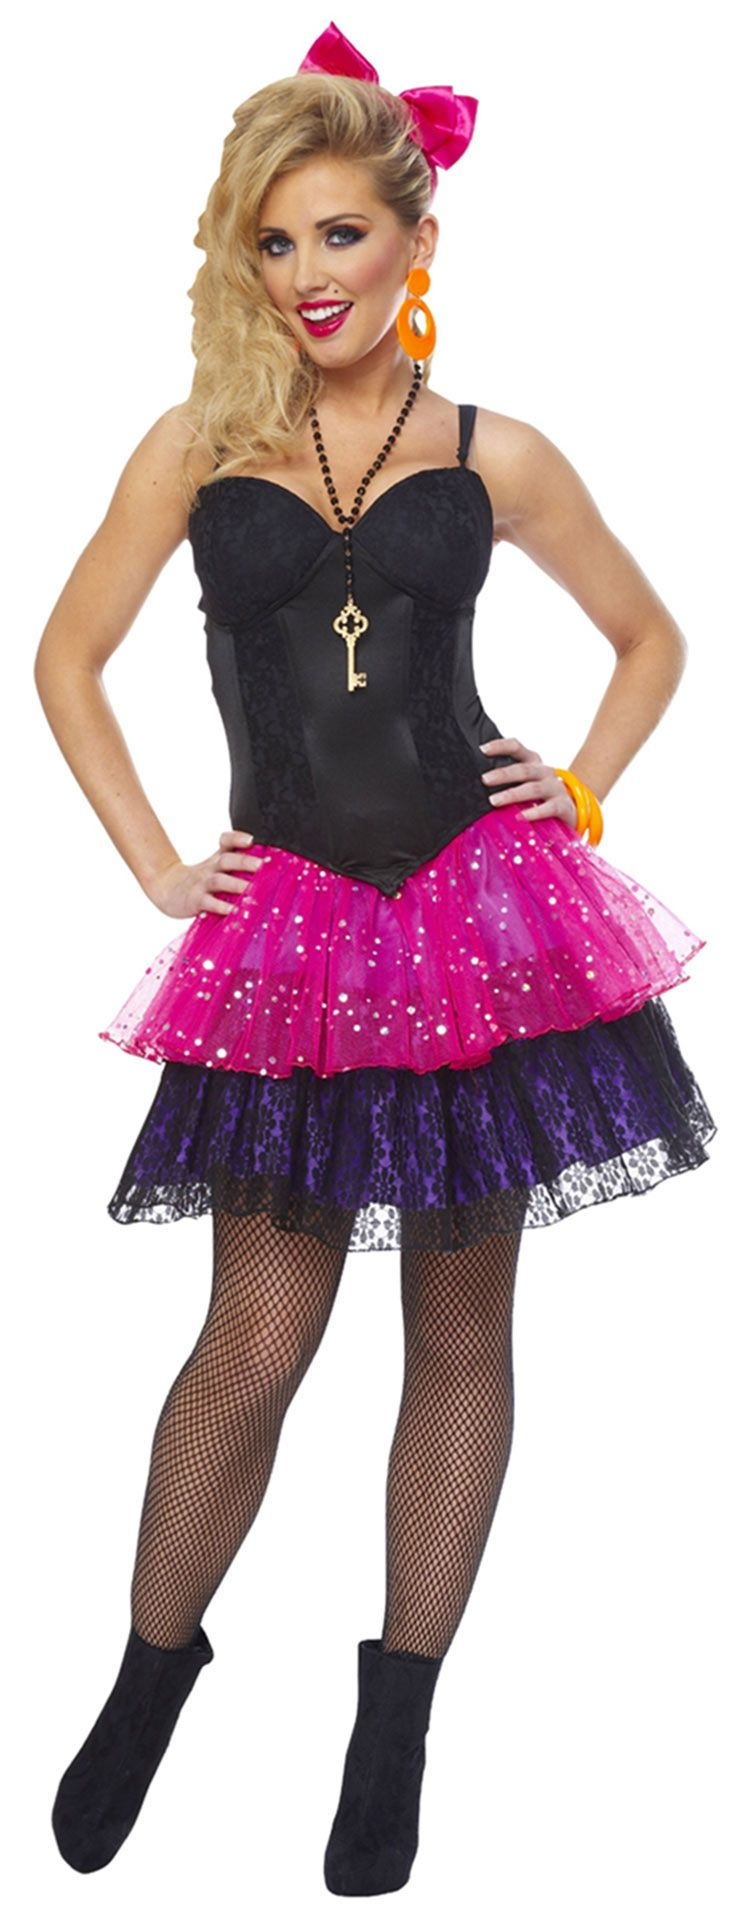 black 80s corset sexy costume eighties costumes - 80s Dancer Halloween Costume